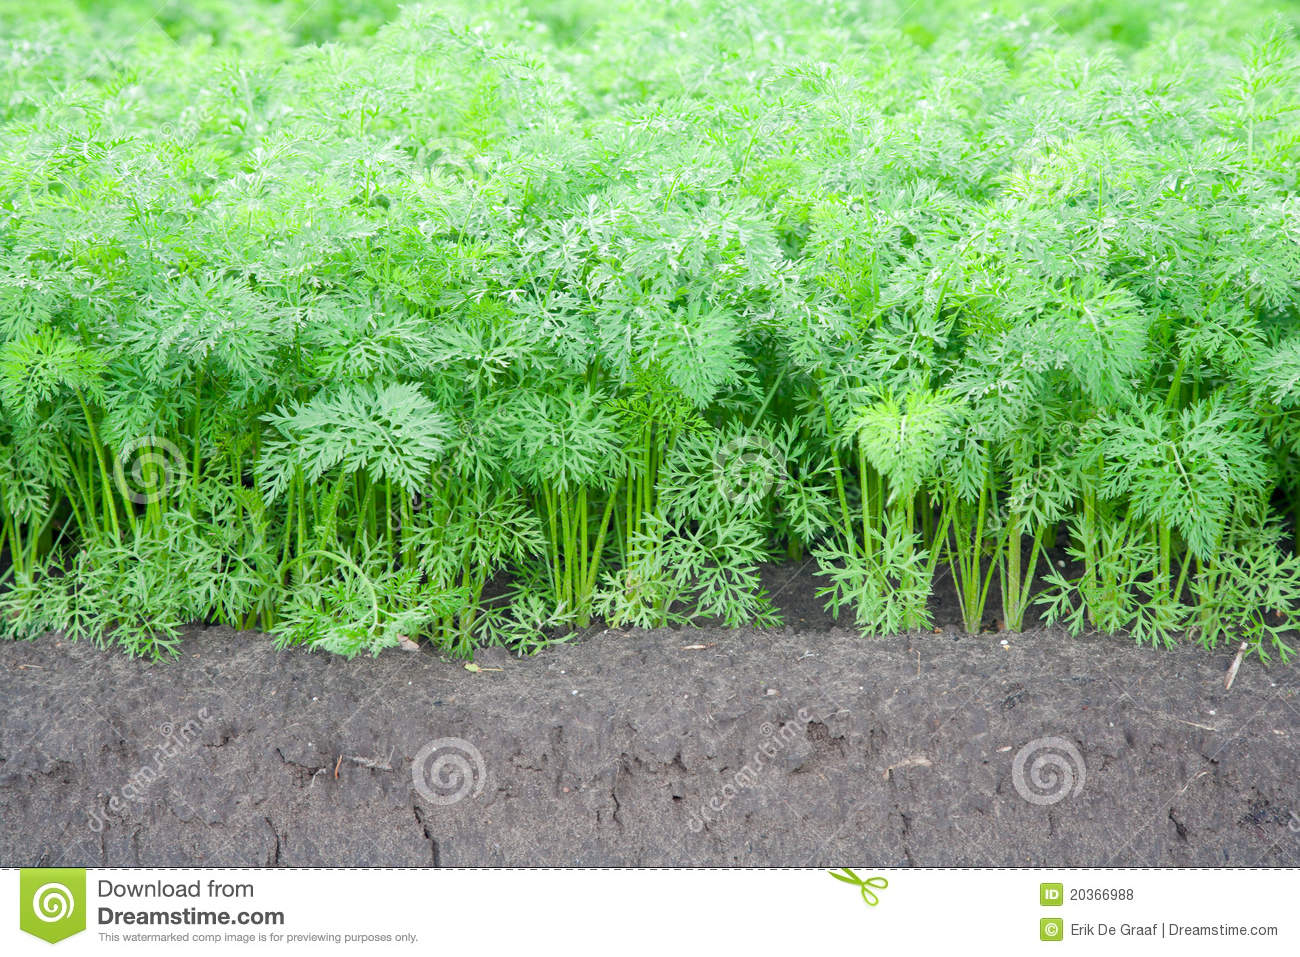 Carrot Field Stock Photo | Getty Images